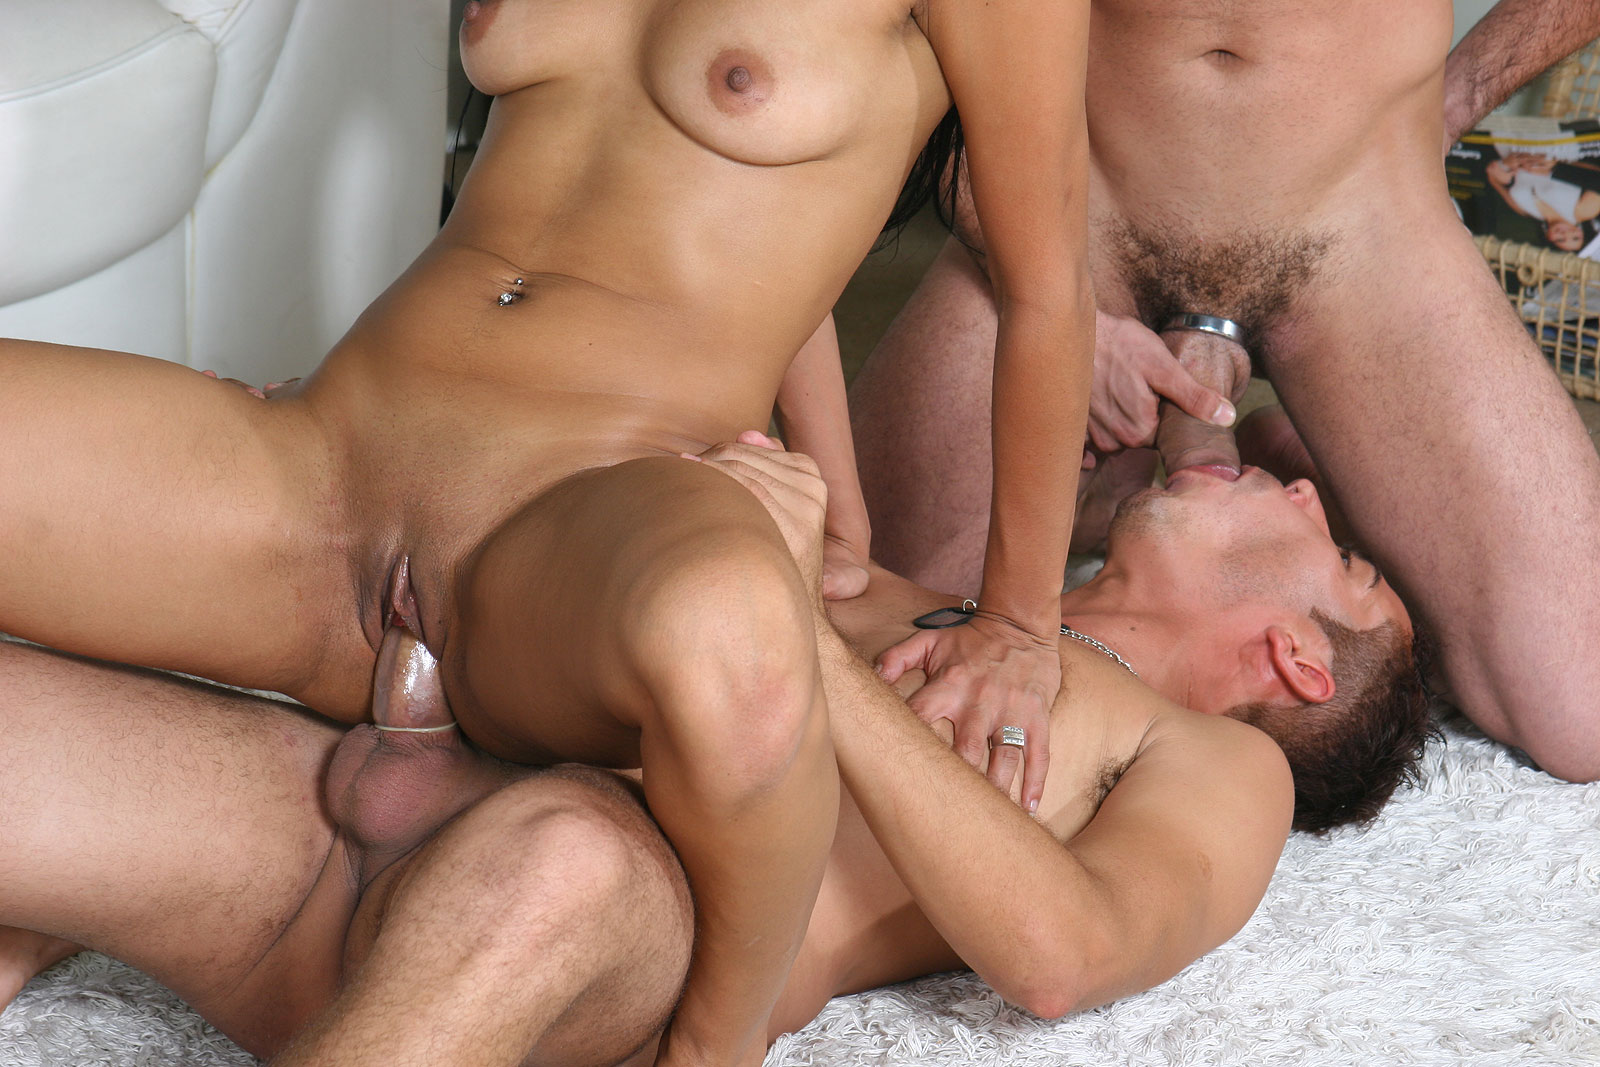 Bi sex threesome porn older women boys